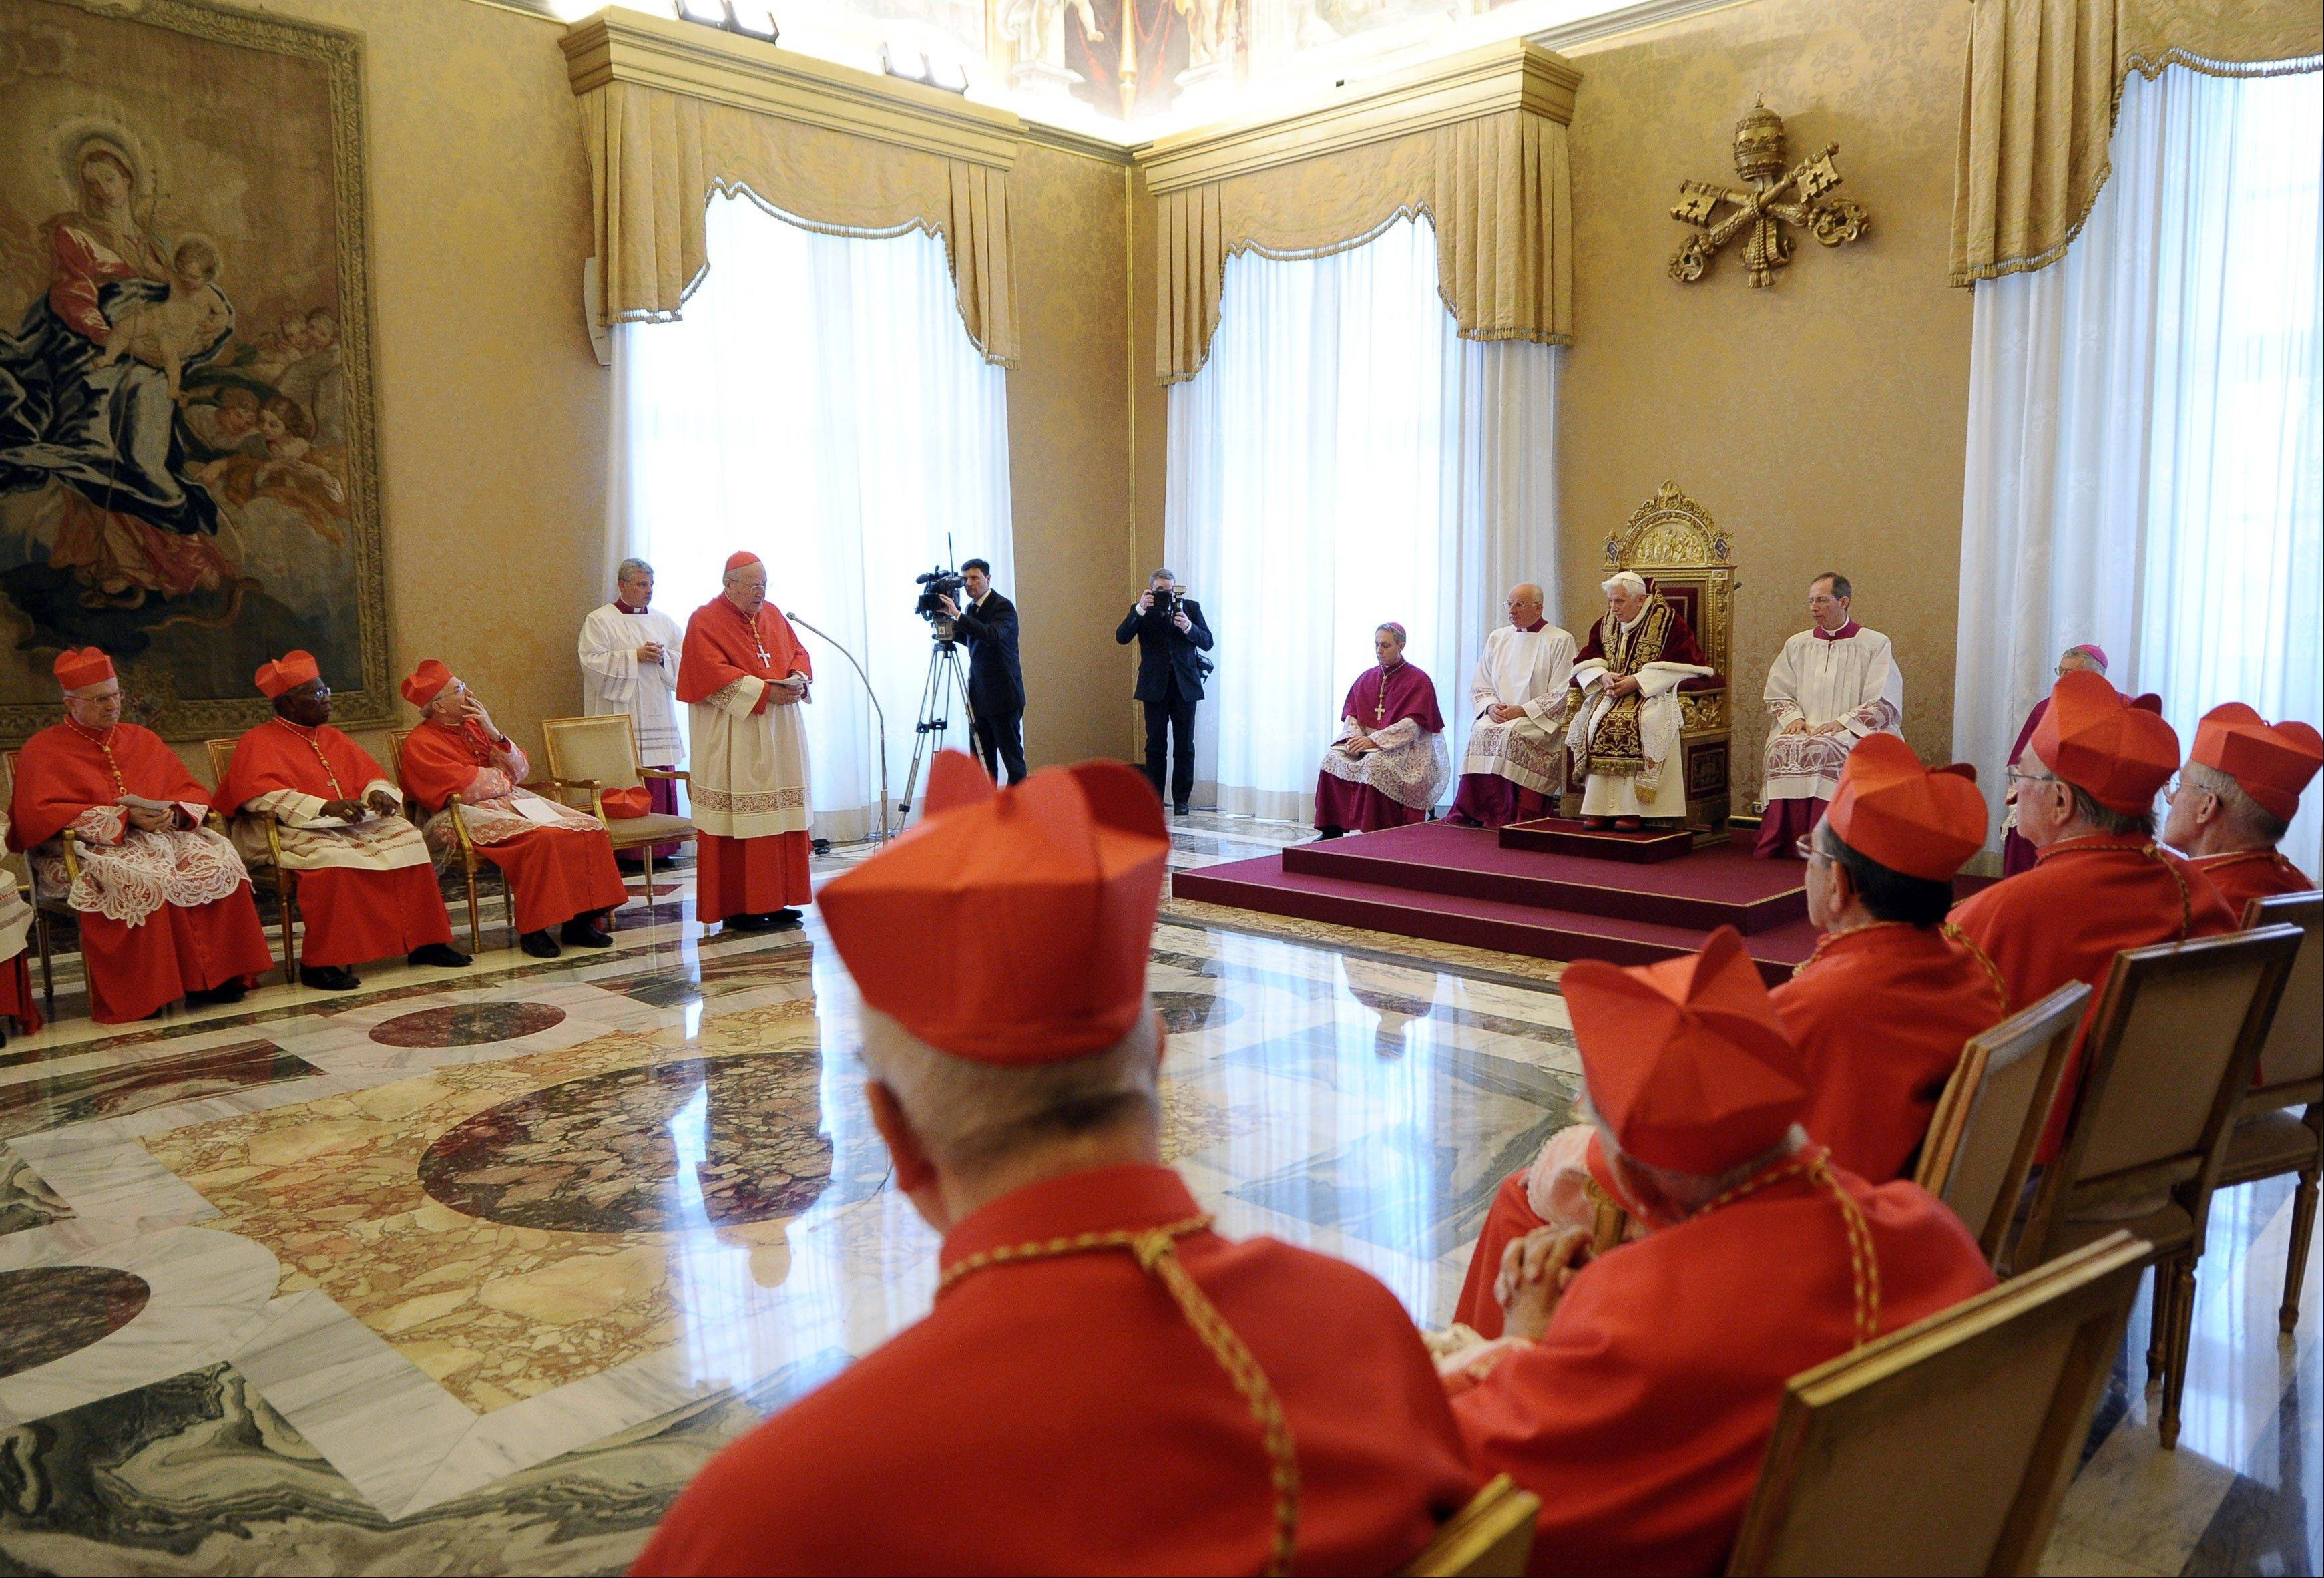 Pope Benedict XVI, sitting on the throne at center-right, attends a meeting of Vatican cardinals at the Vatican.